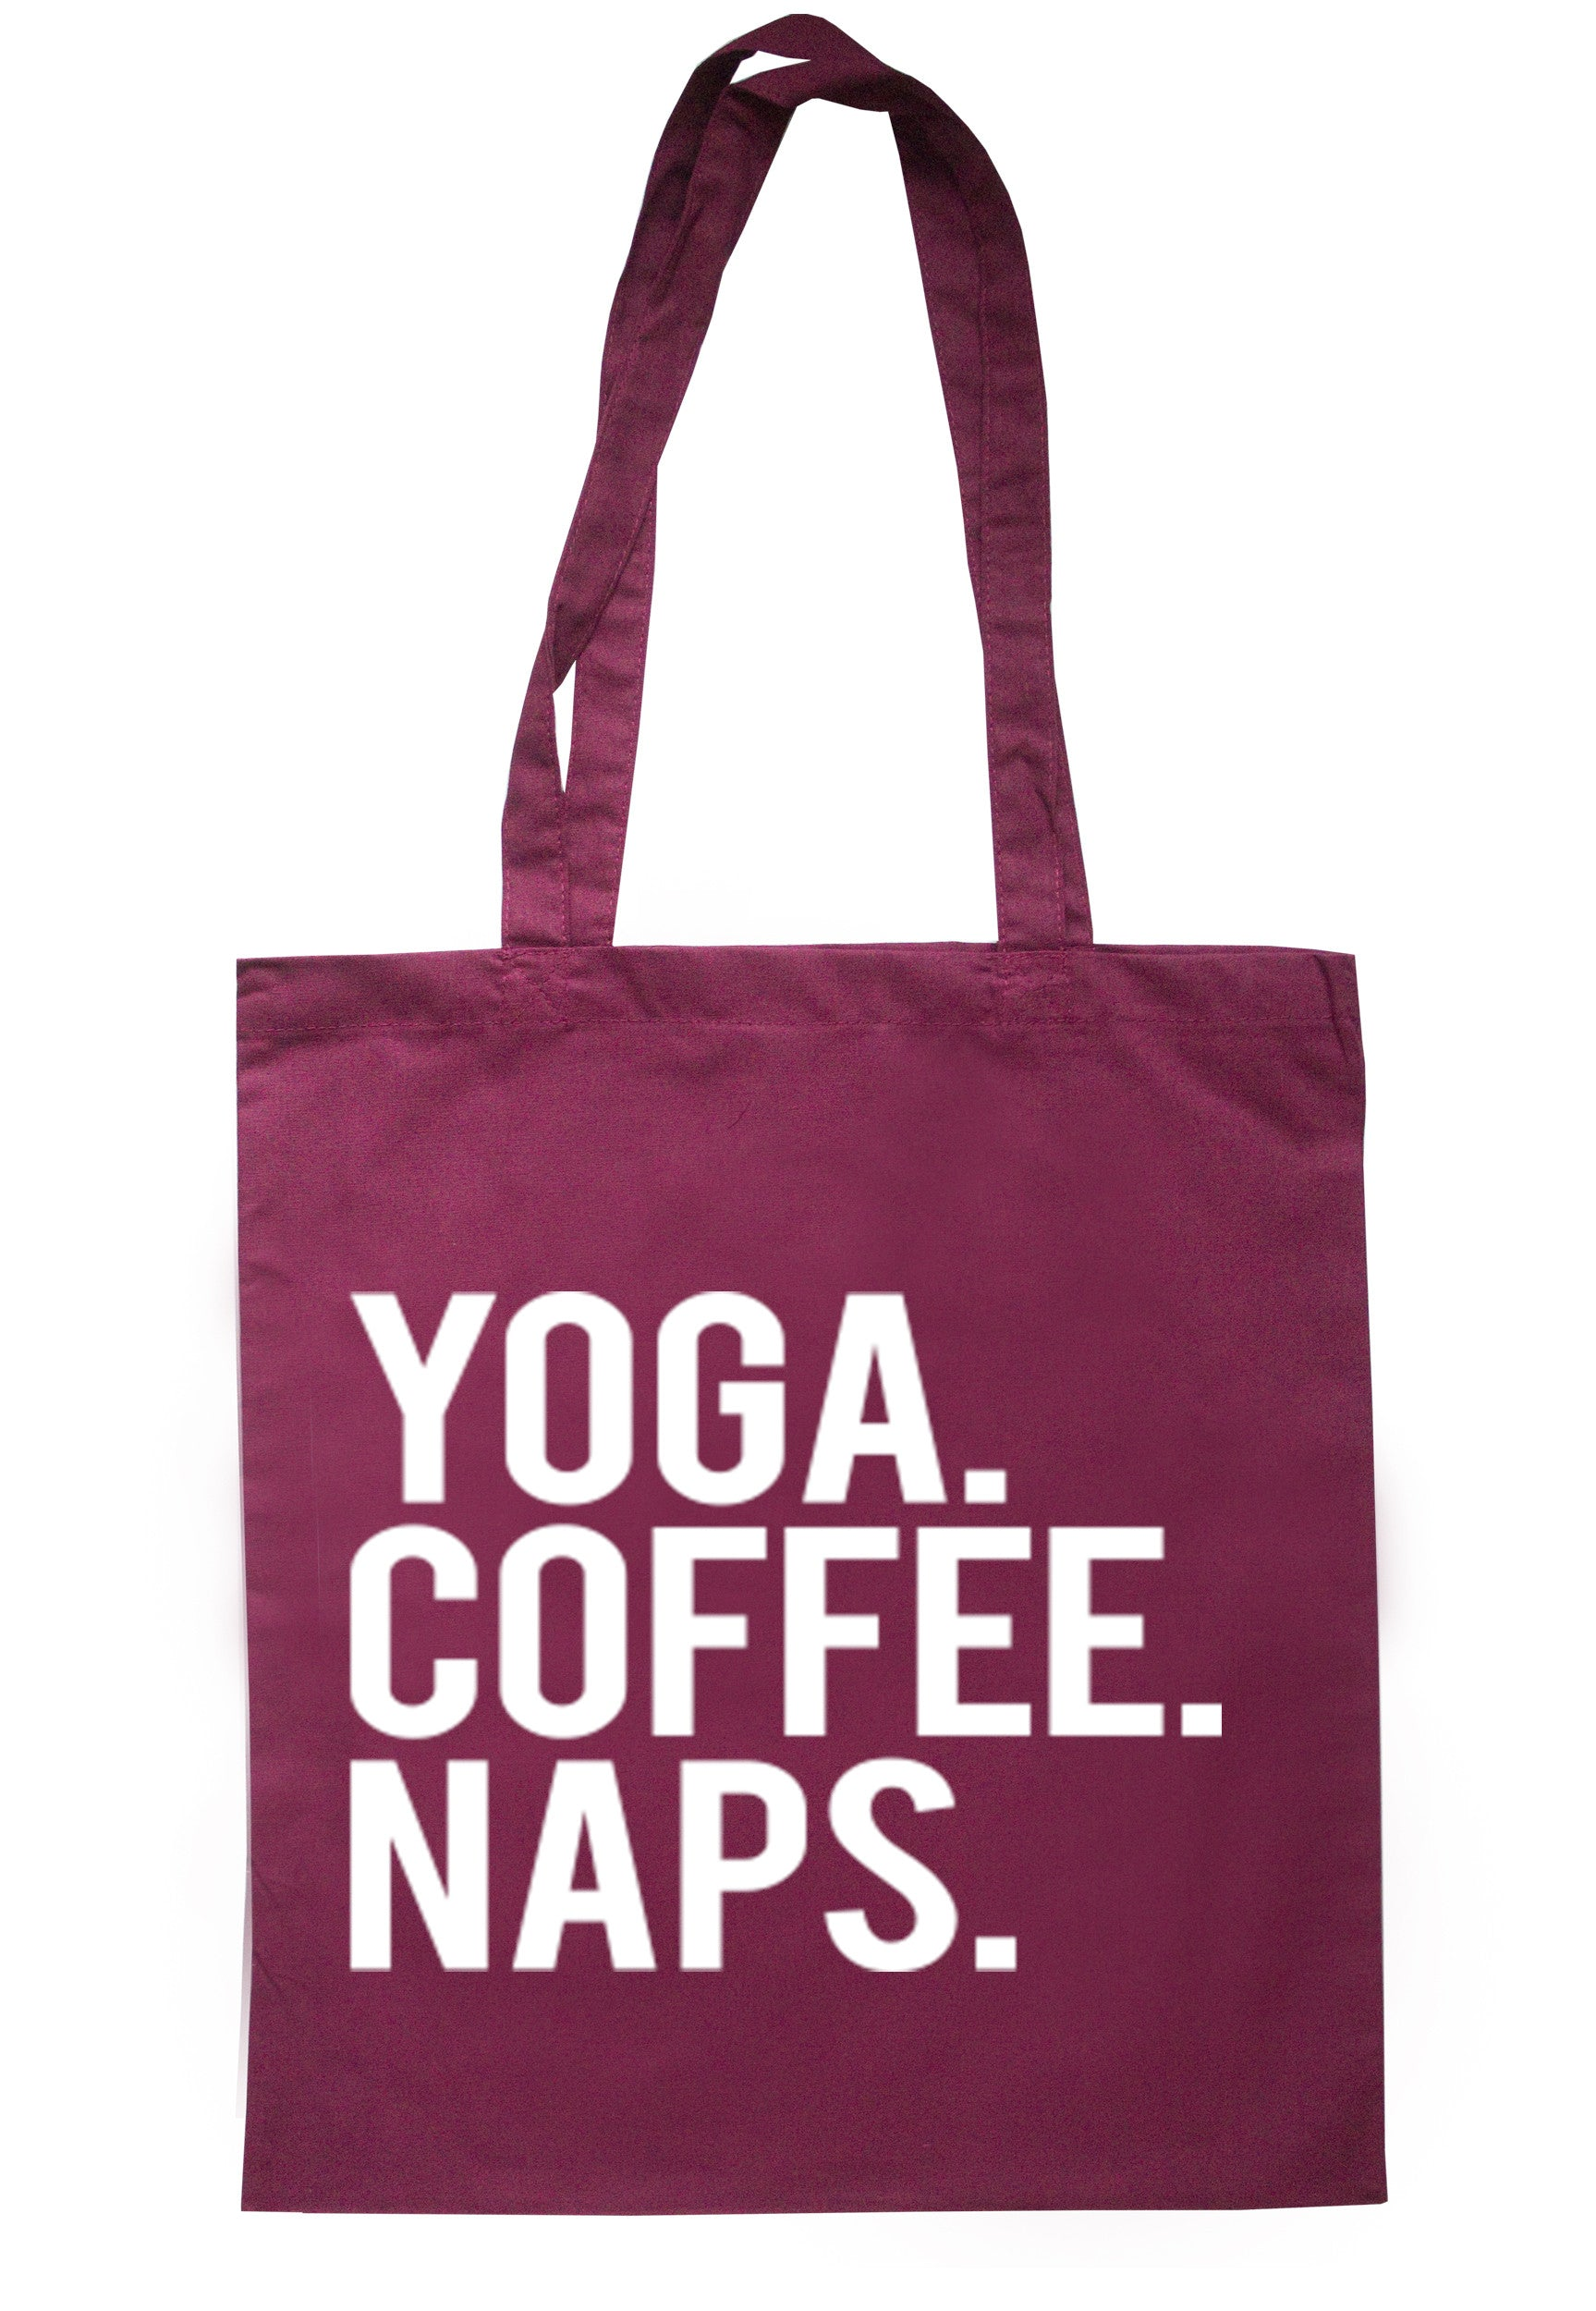 Yoga Coffee Naps Tote Bag TB0135 - Illustrated Identity Ltd.